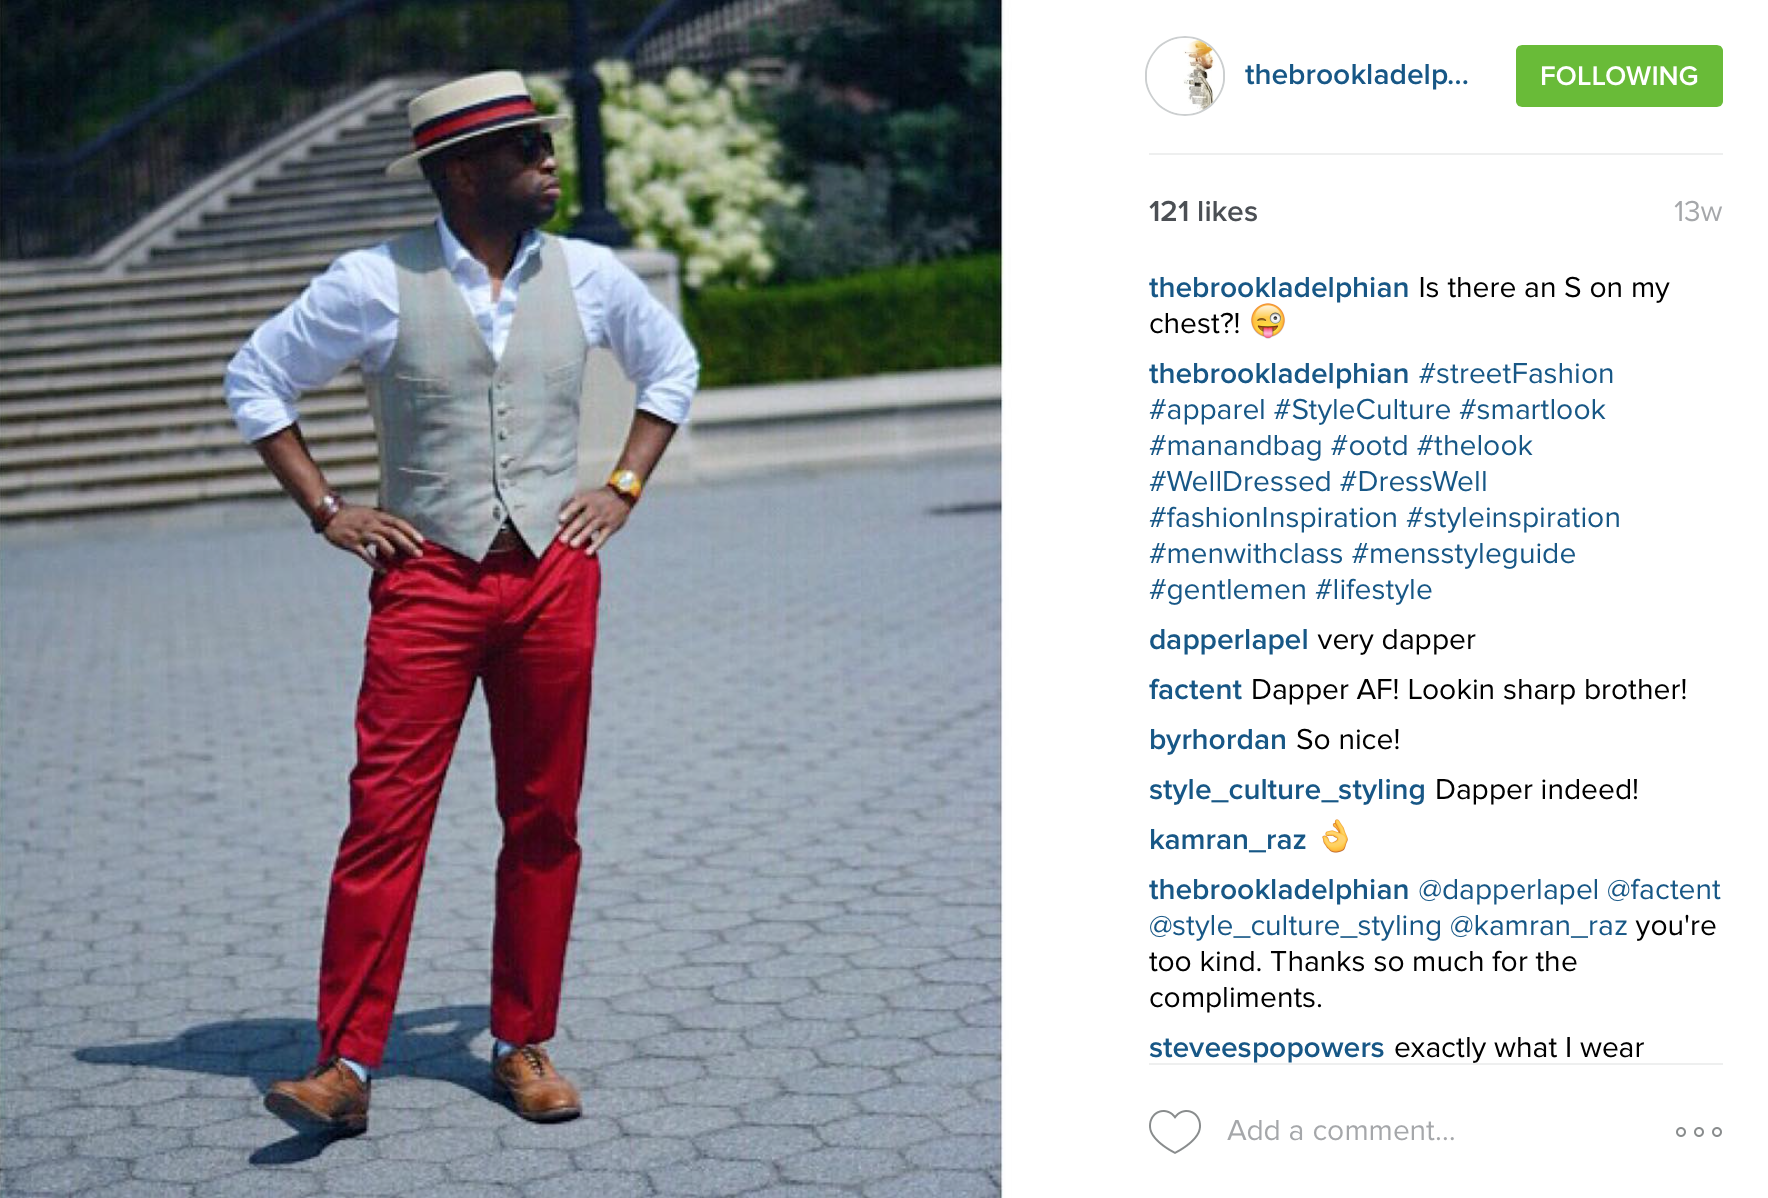 Na'eem has a pair of red pants for Summer and Winter